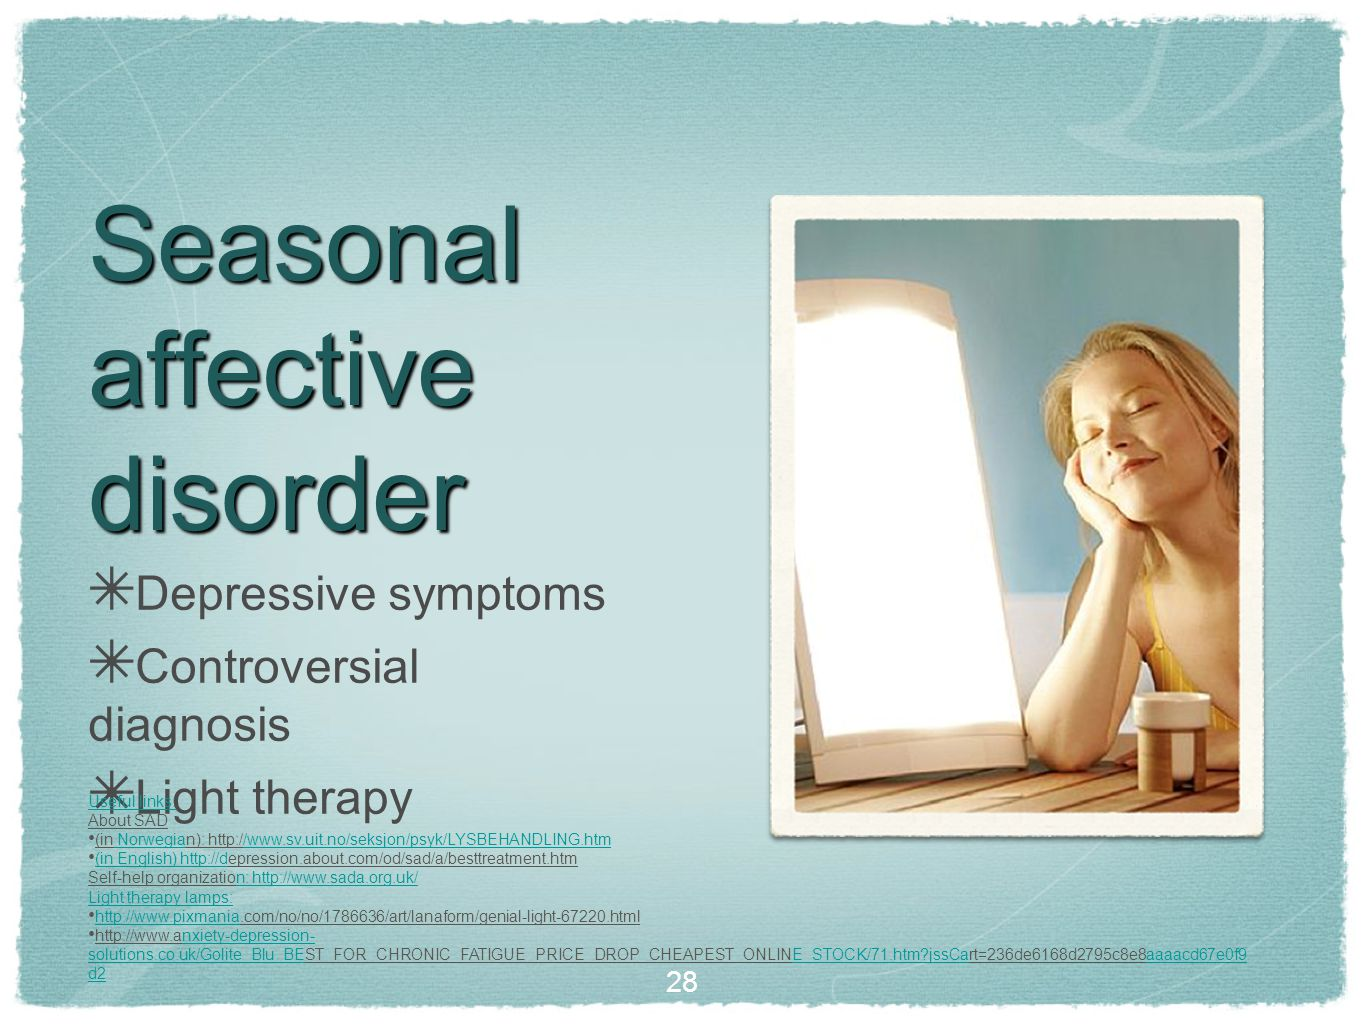 Seasonal affective disorder ✴ Depressive symptoms ✴ Controversial diagnosis ✴ Light therapy Useful links: About SAD (in Norwegian): http://www.sv.uit.no/seksjon/psyk/LYSBEHANDLING.htm Norwegia/www.sv.uit.no/seksjon/psyk/LYSBEHANDLING.htm (in English) http://depression.about.com/od/sad/a/besttreatment.htm (in English) http://d Self-help organization: http://www.sada.org.uk/n: http://www.sada.org.uk/ Light therapy lamps: http://www.pixmania.com/no/no/1786636/art/lanaform/genial-light-67220.html http://www.pixmania http://www.anxiety-depression- solutions.co.uk/Golite_Blu_BEST_FOR_CHRONIC_FATIGUE_PRICE_DROP_CHEAPEST_ONLINE_STOCK/71.htm jssCart=236de6168d2795c8e8aaaacd67e0f9 d2nxiety-depression- solutions.co.uk/Golite_Blu_BEE_STOCK/71.htm jssCaaaaacd67e0f9 d2 28